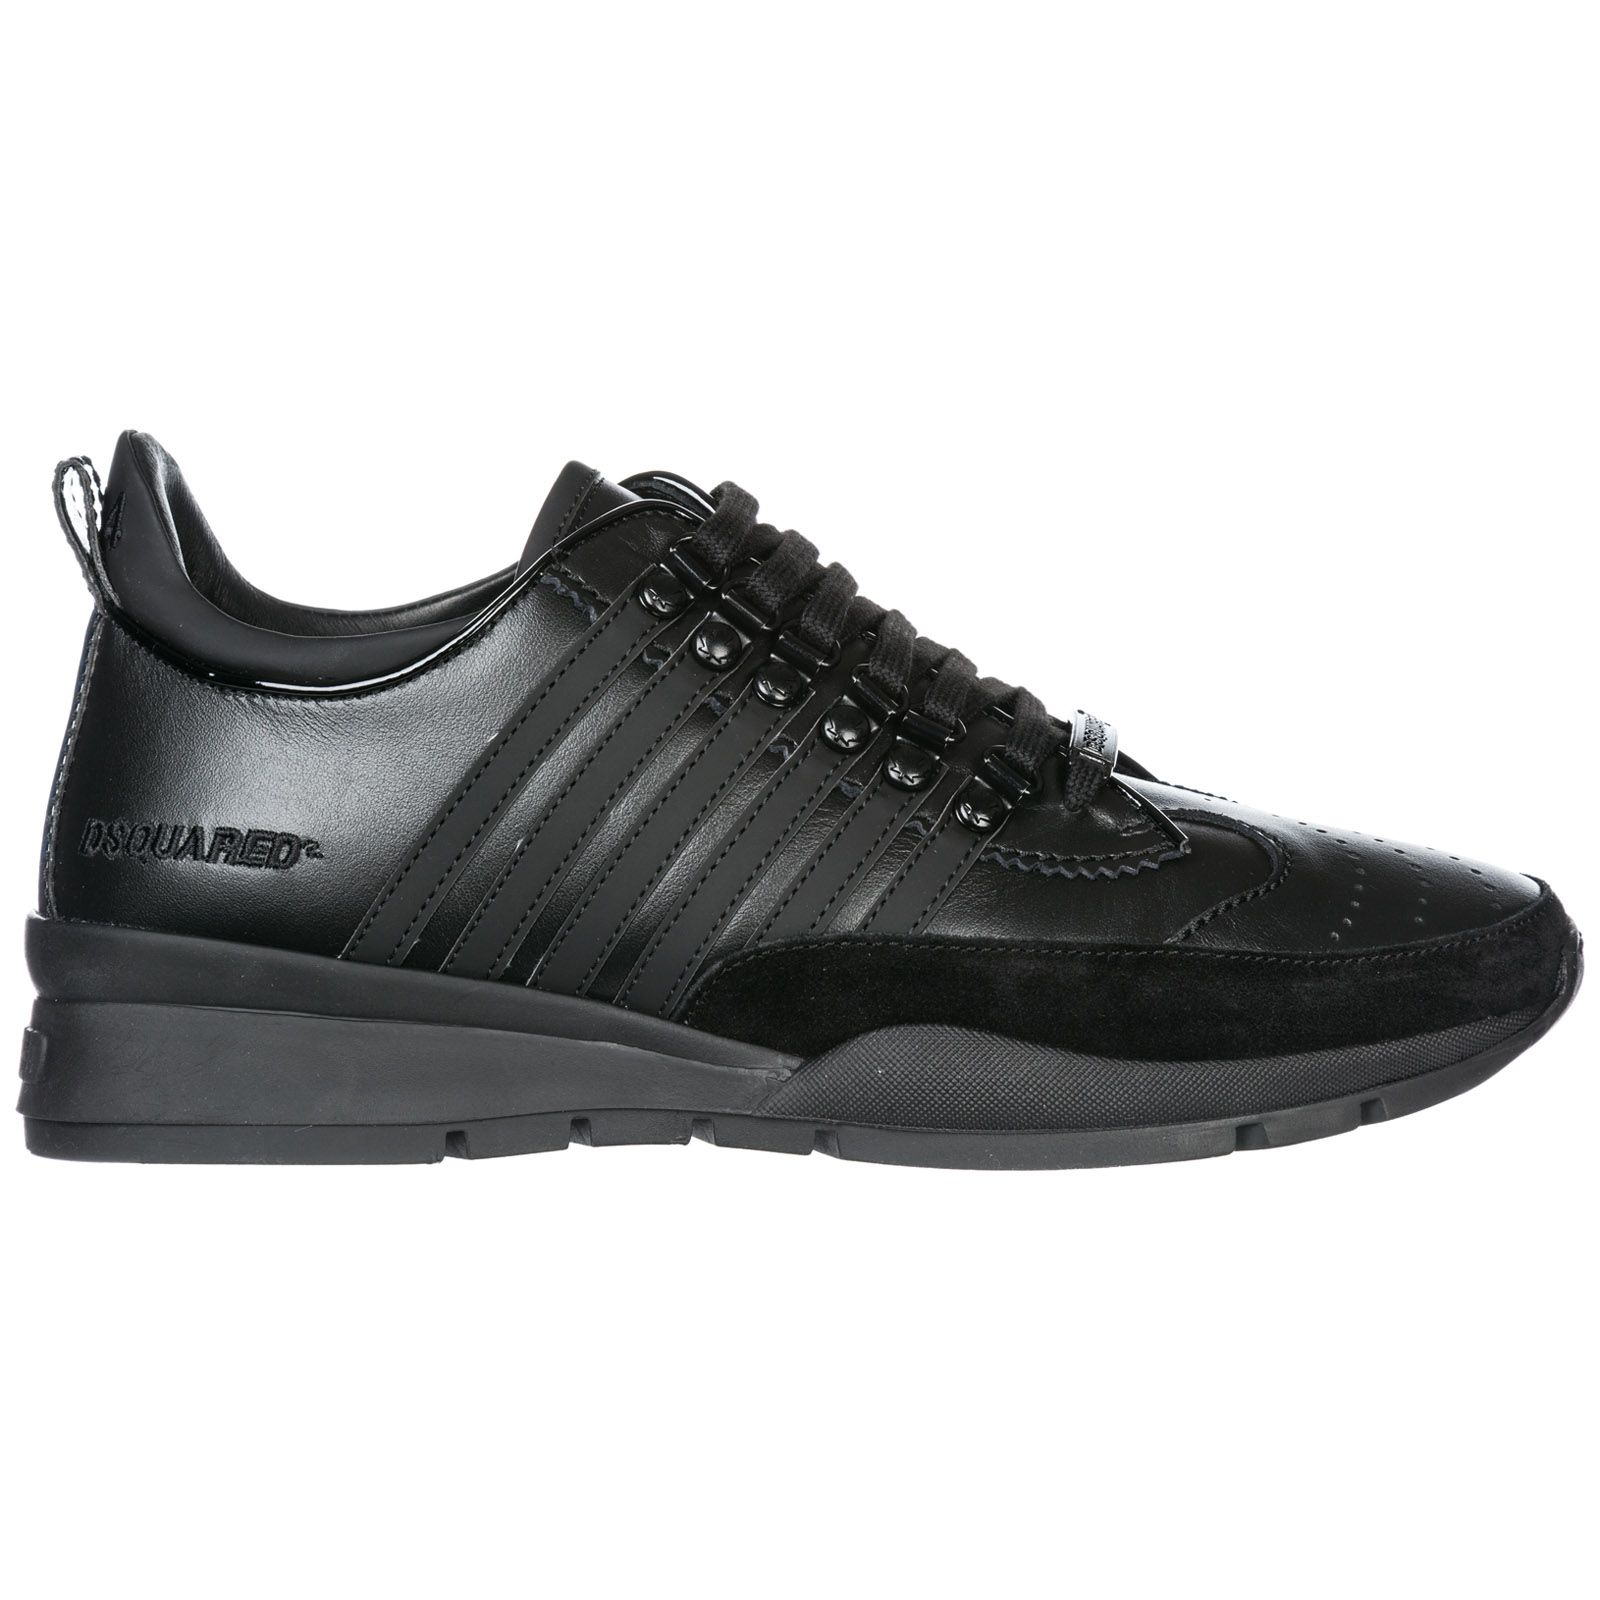 Men's shoes leather trainers sneakers 251 | Leather trainers